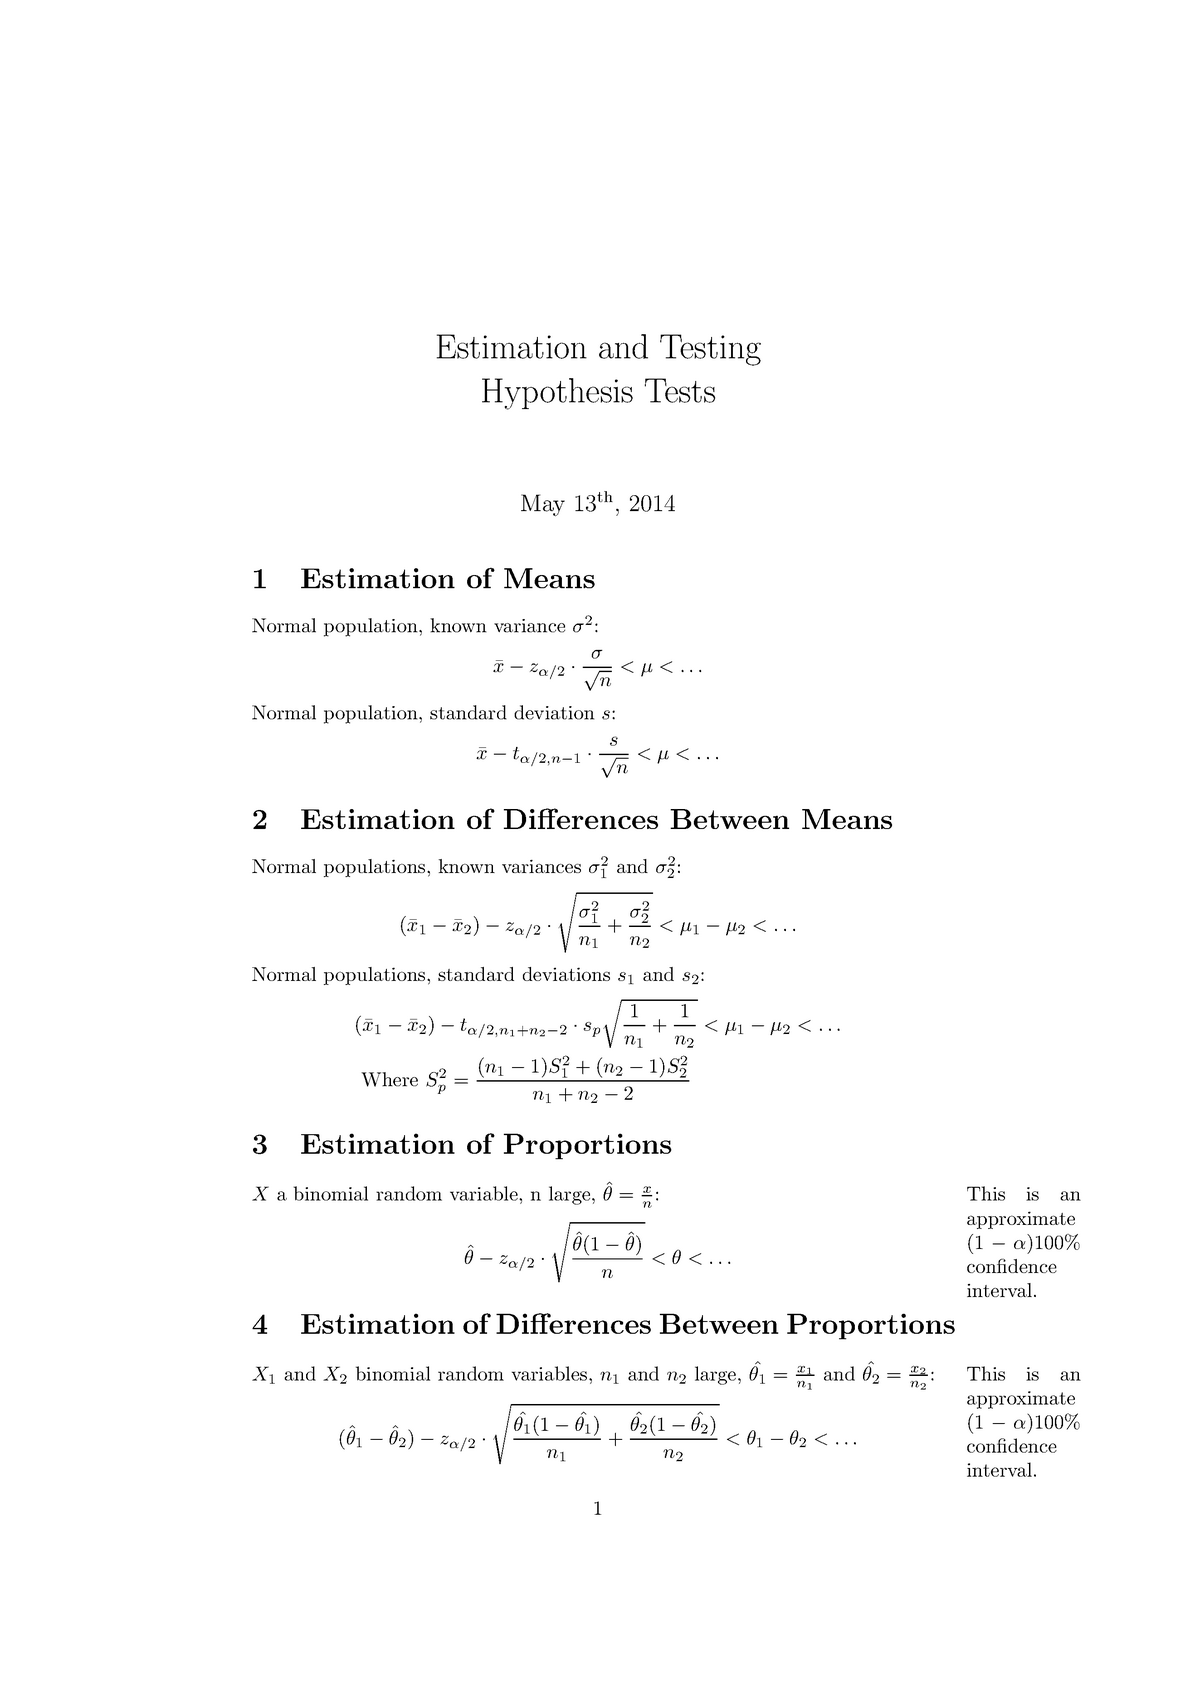 Hypothesis tests - EBP036A05: Estimation and Testing - StudeerSnel nl